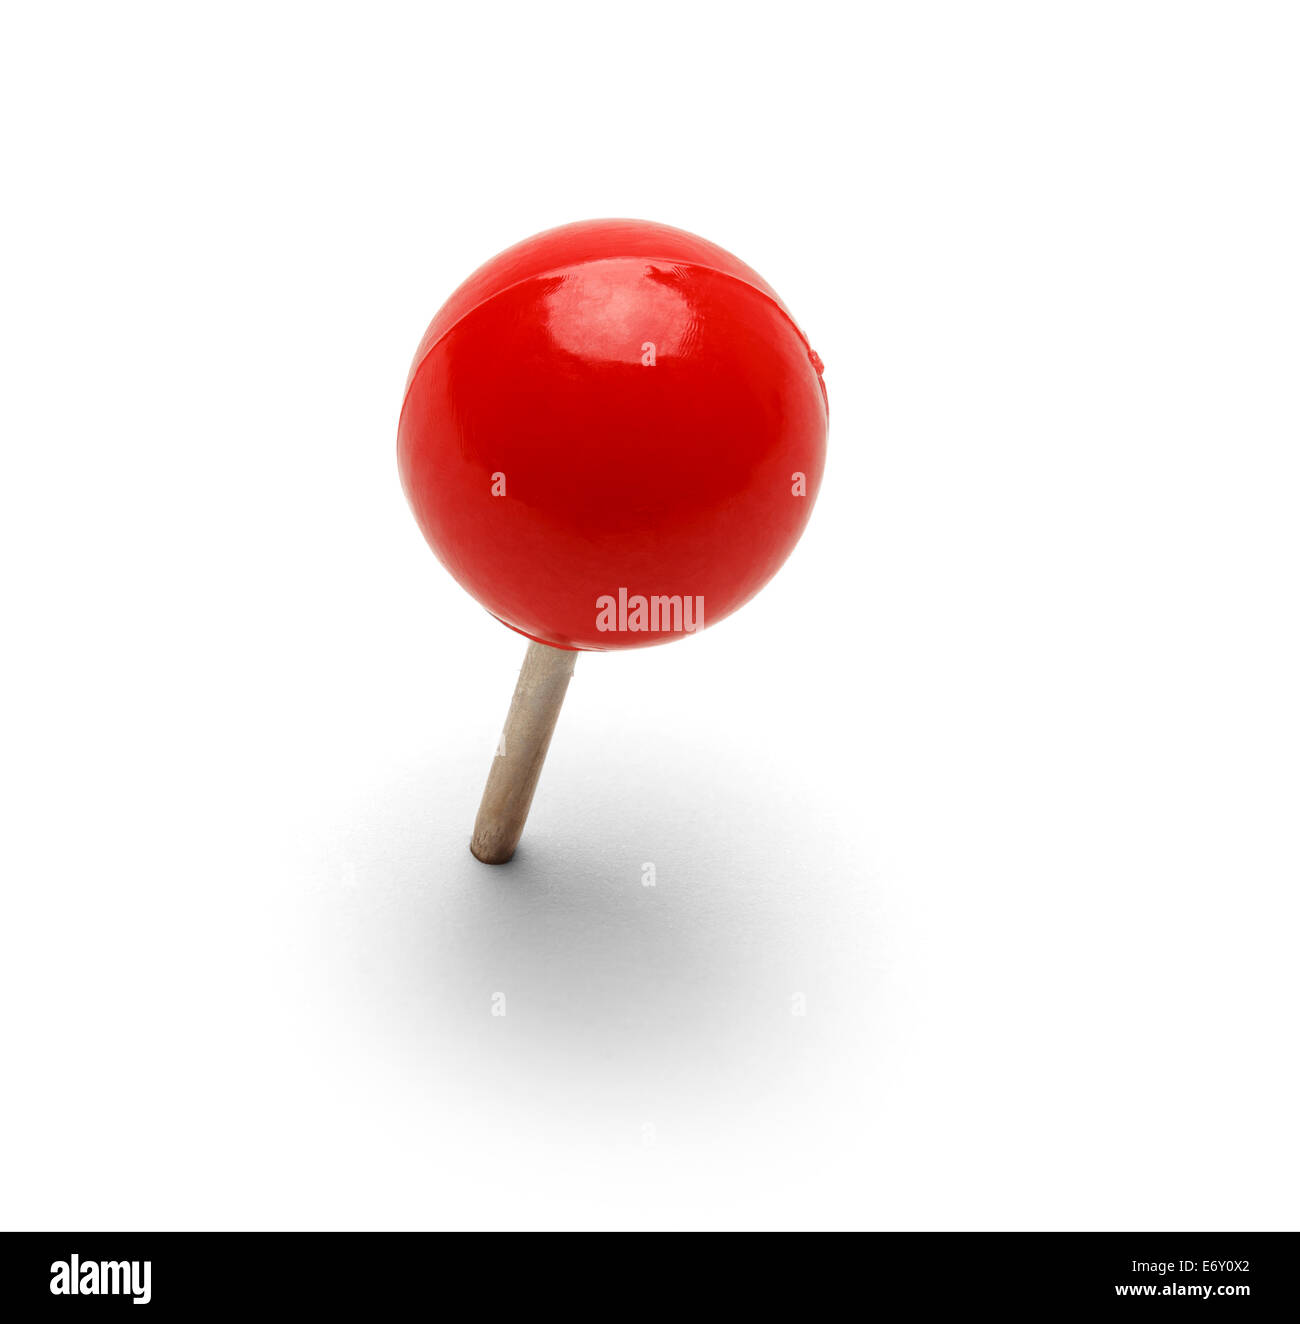 Round Red Thumb Tack Push pin Isolated On White Background. - Stock Image